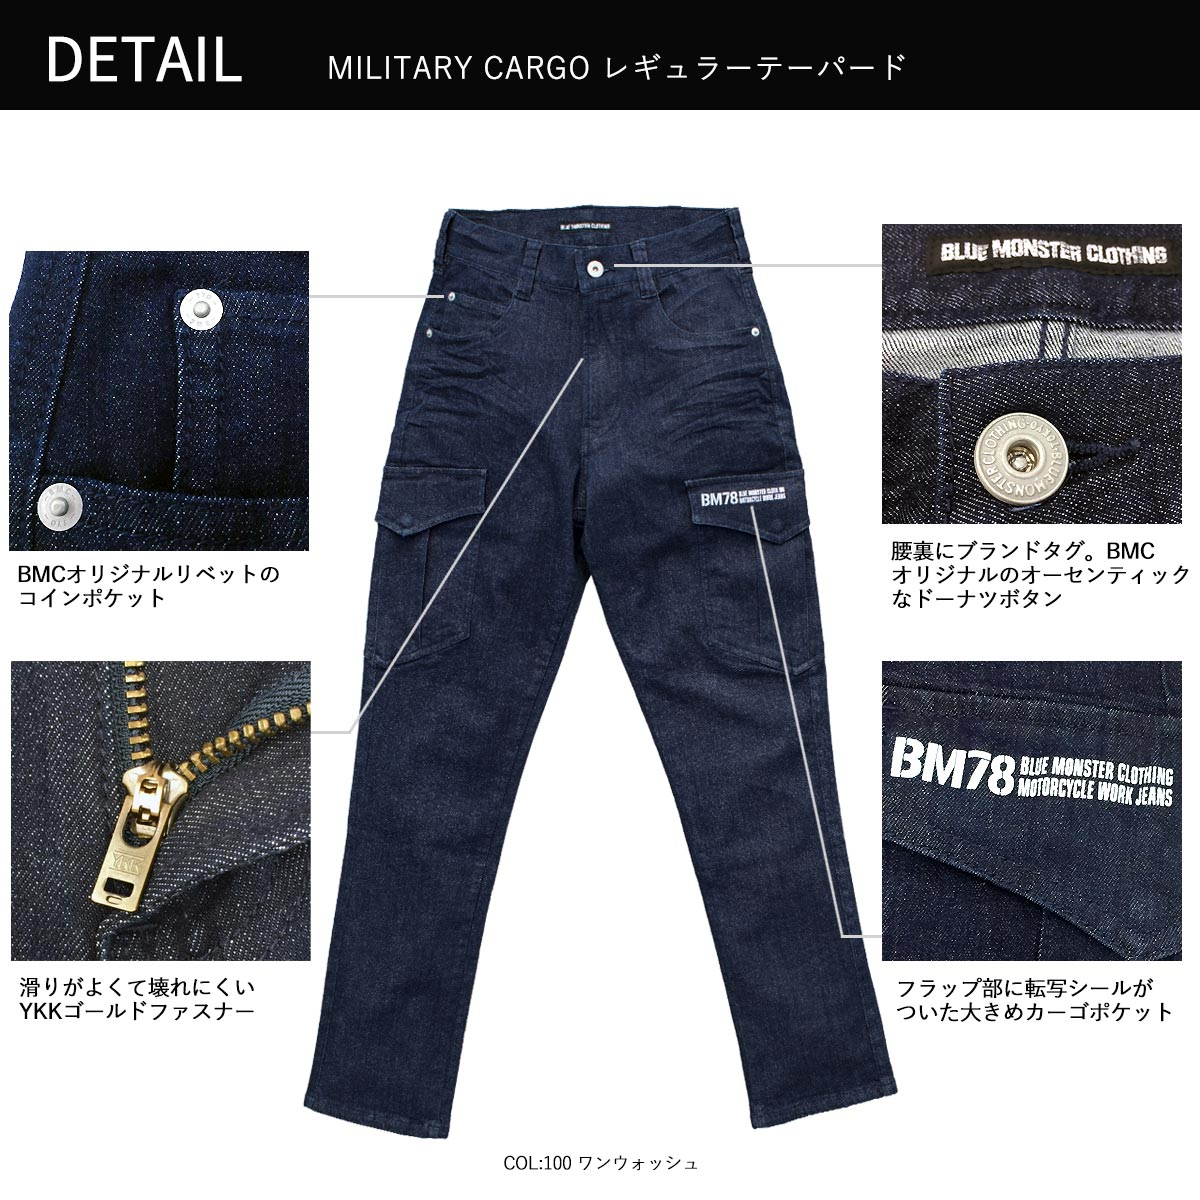 Stretch denim military cargo work pants men BMW78C cargo pant regular  tapered one wash / dark blue / mid light blue S (29 inches of equivalency)  in